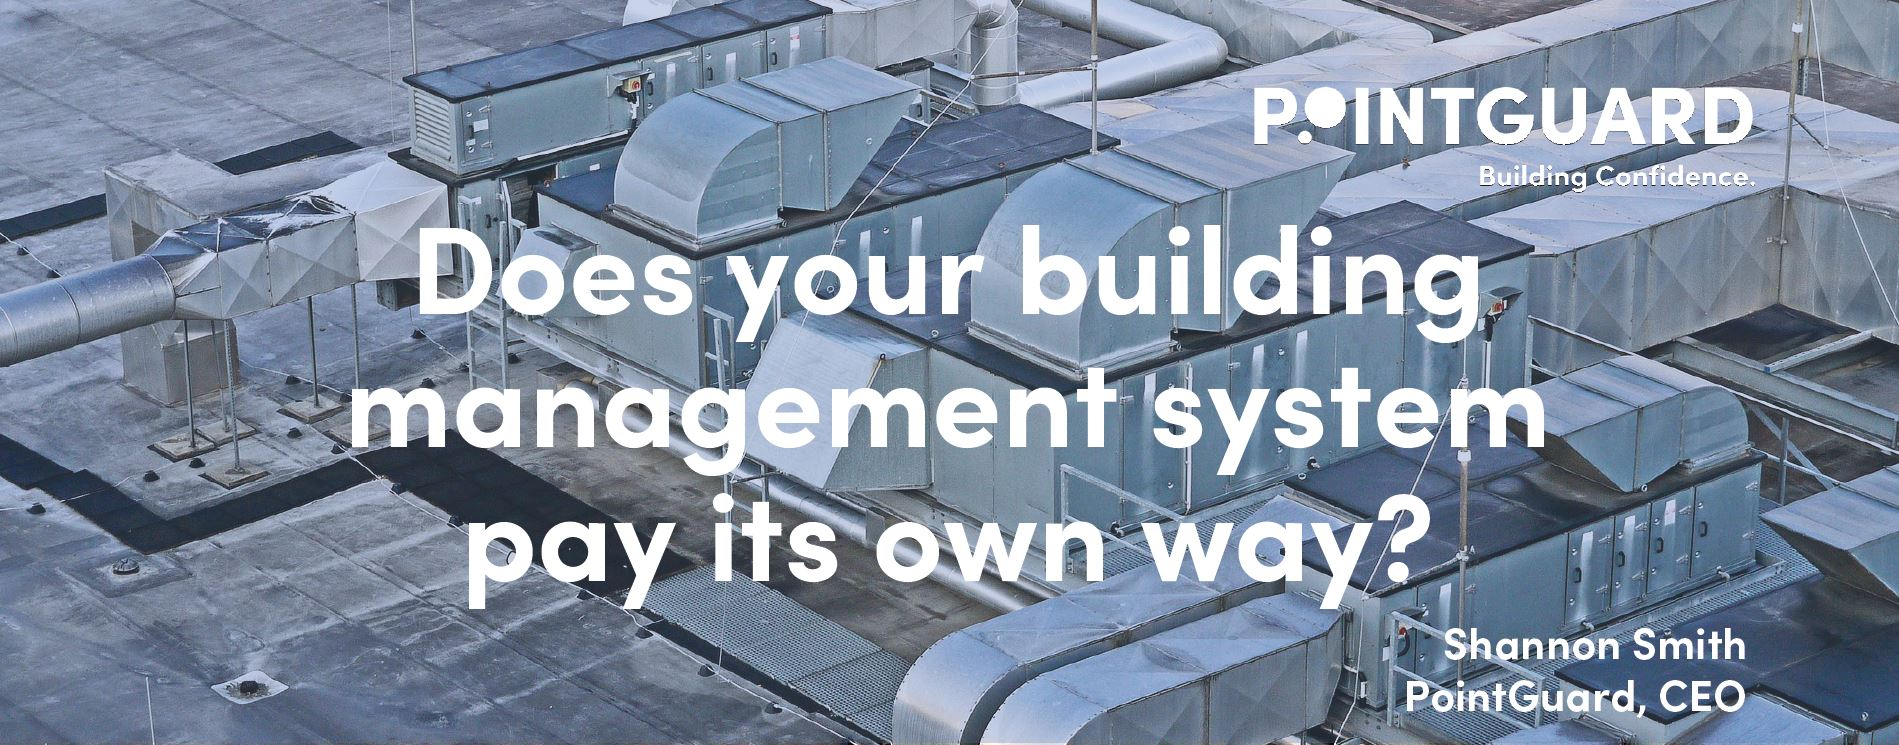 Does your building management system pay its own way?